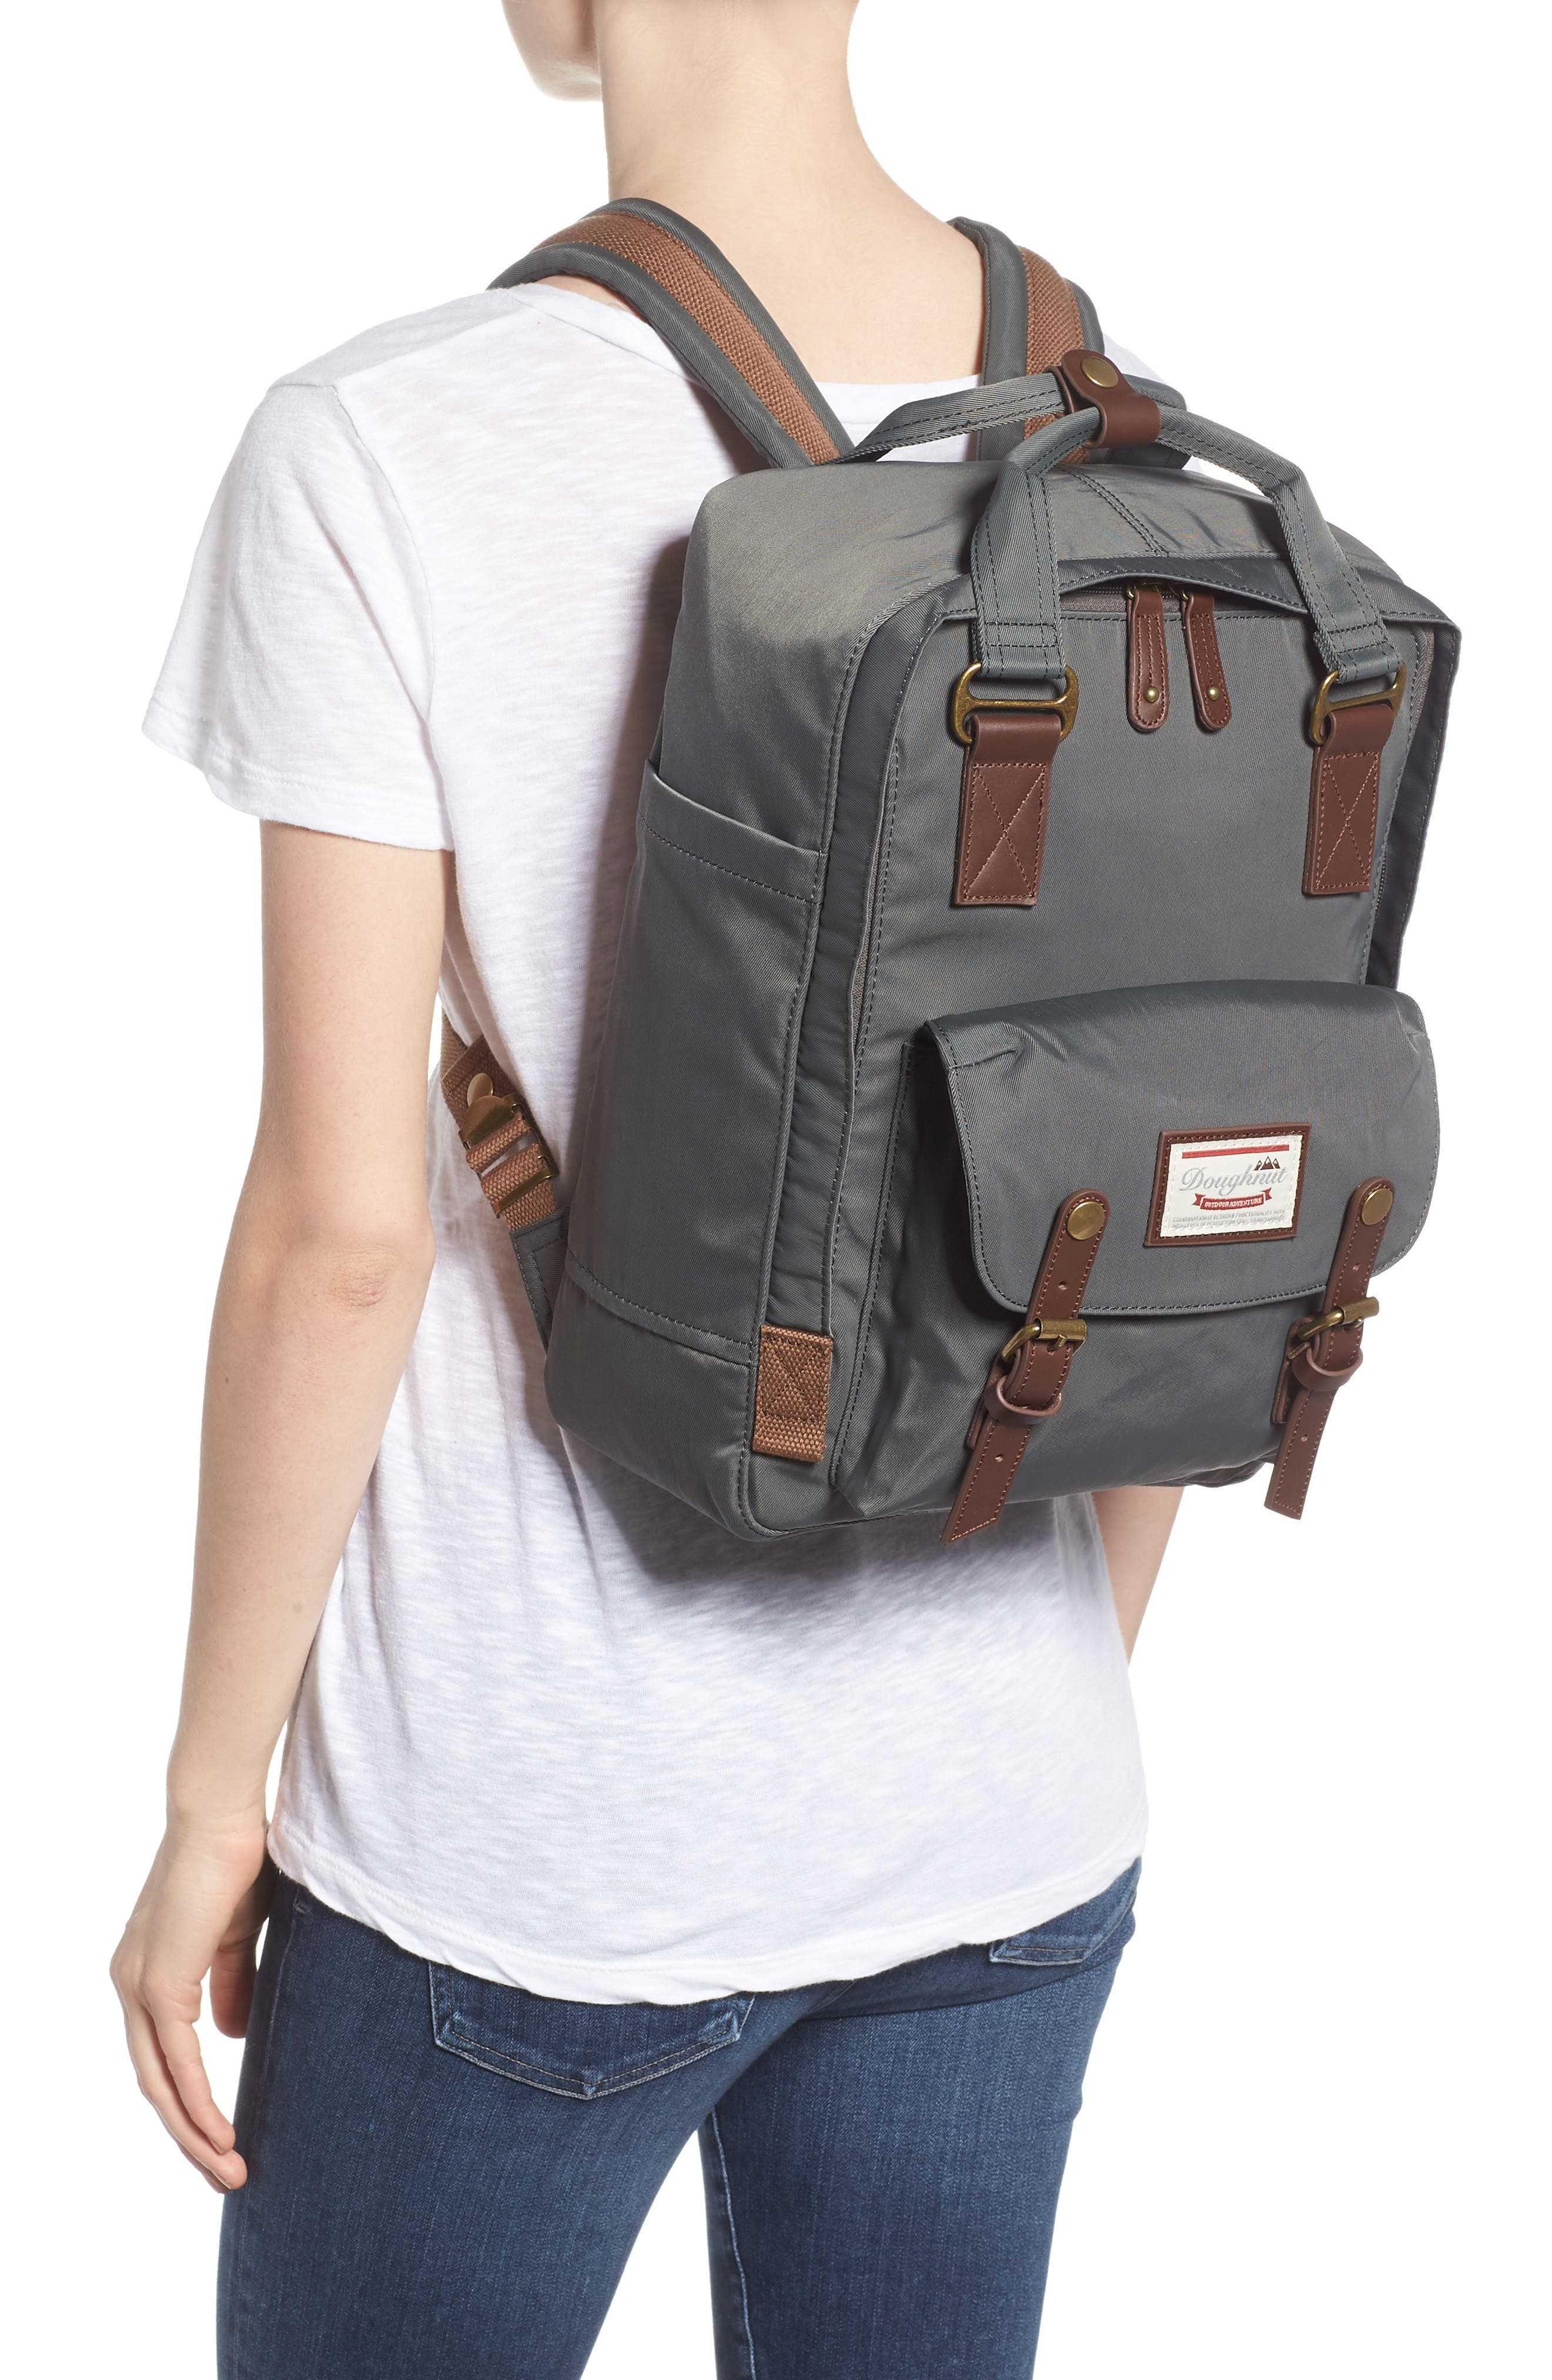 Macaroon Water Resistant Backpack,                             Alternate thumbnail 2, color,                             CHARCOAL